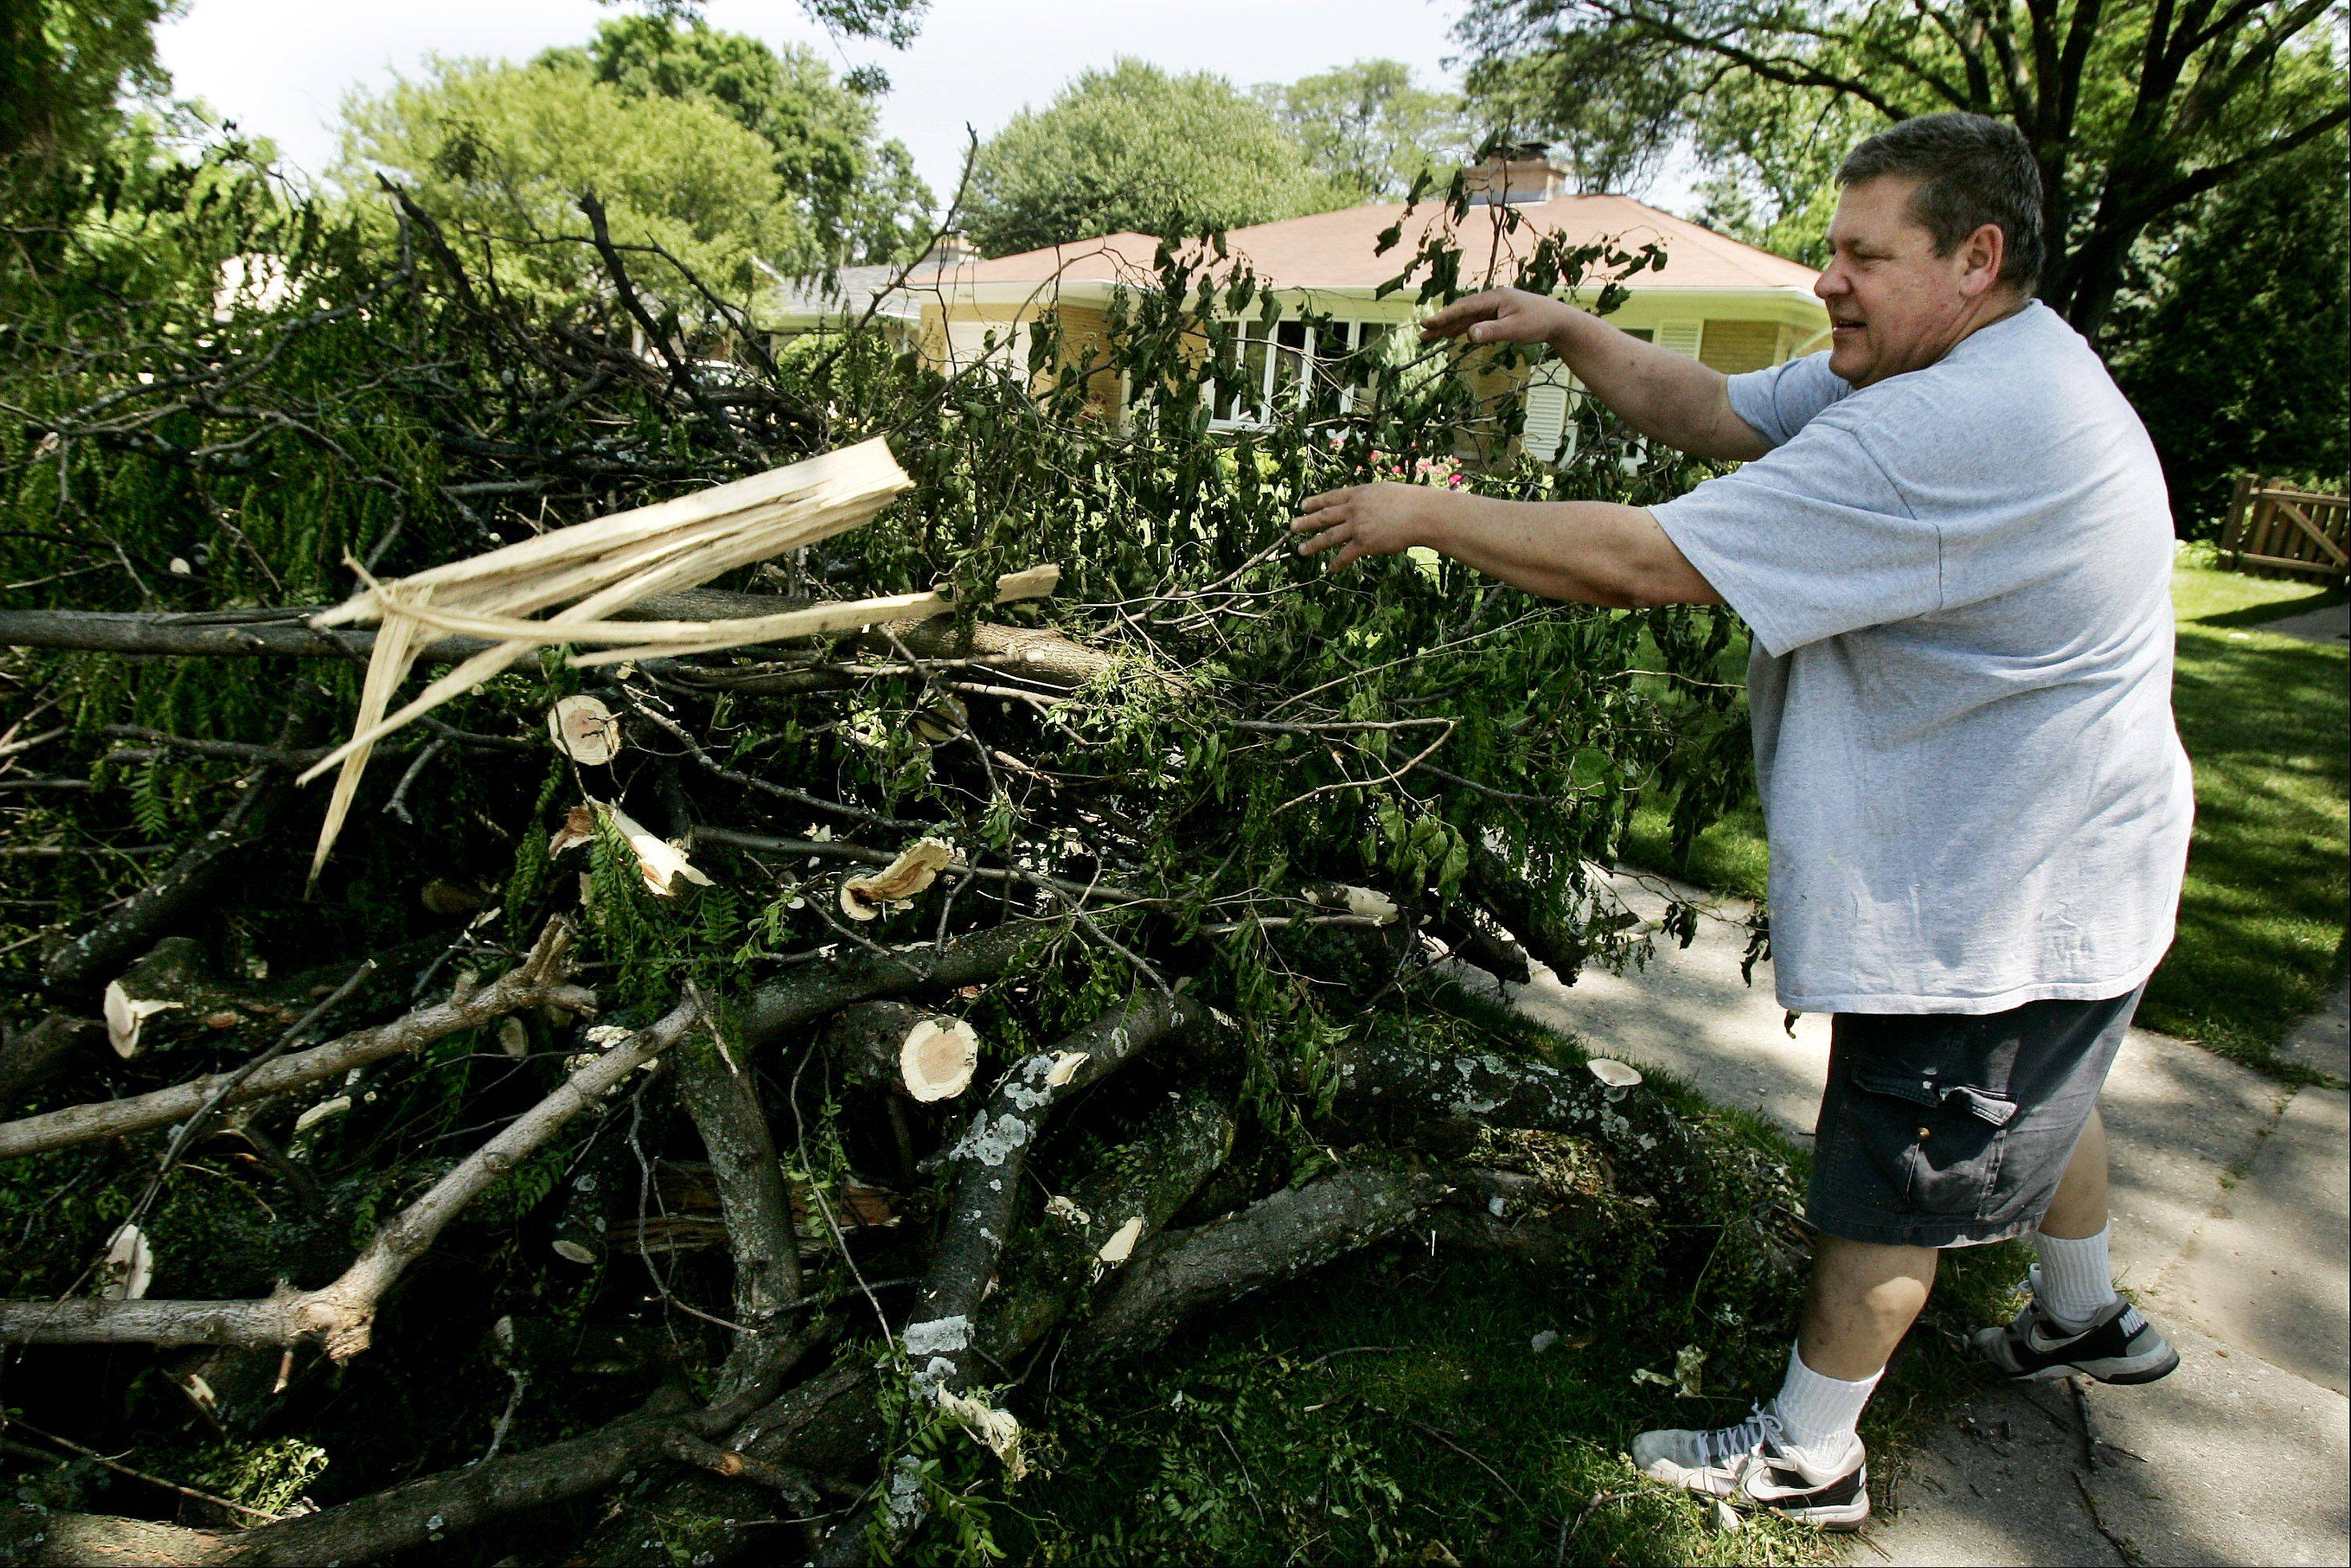 Mark Babicz of the 500 block of See-Gwun Avenue throws another log onto the brush along his street Sunday, as Mount Prospect residents continue to clean up from Tuesday's storm that destroyed a large number of trees in the neighborhood.